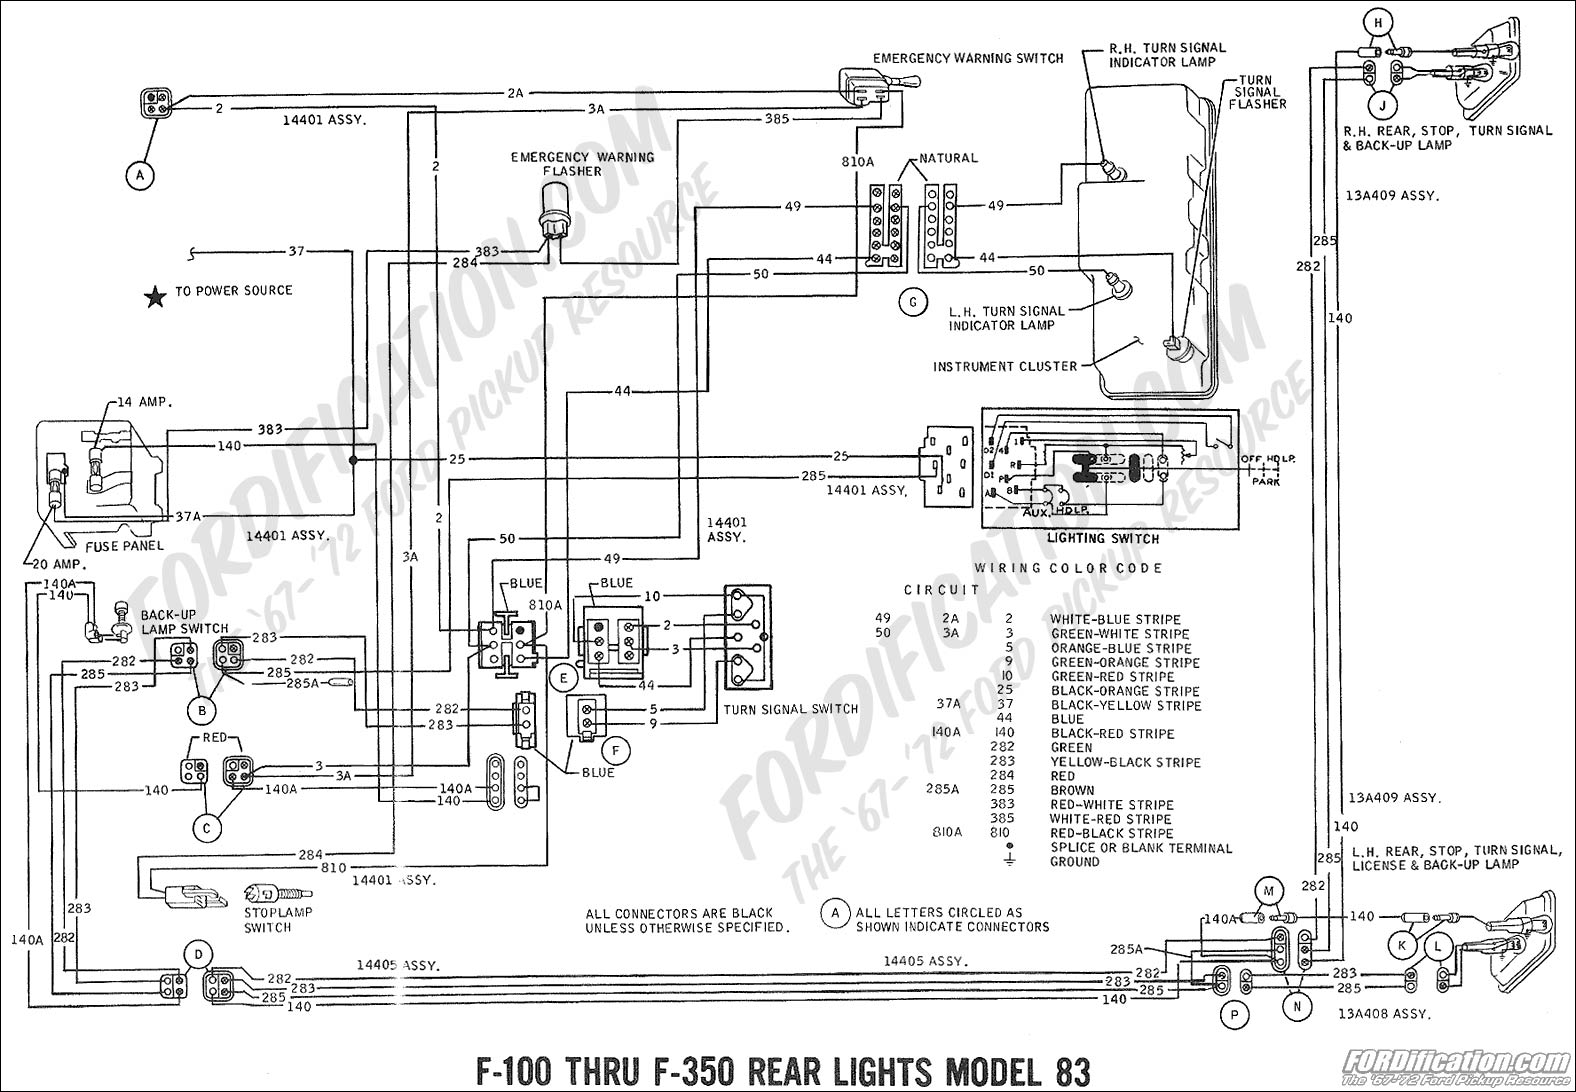 361620240384 additionally Diagram view additionally 21914 Need Help Transmission Fluid And Engine Oil Leak furthermore T3223755 Location cruise control fuse in 1995 as well Frpp Speedo Recal 9498 Install. on ford transmission cable